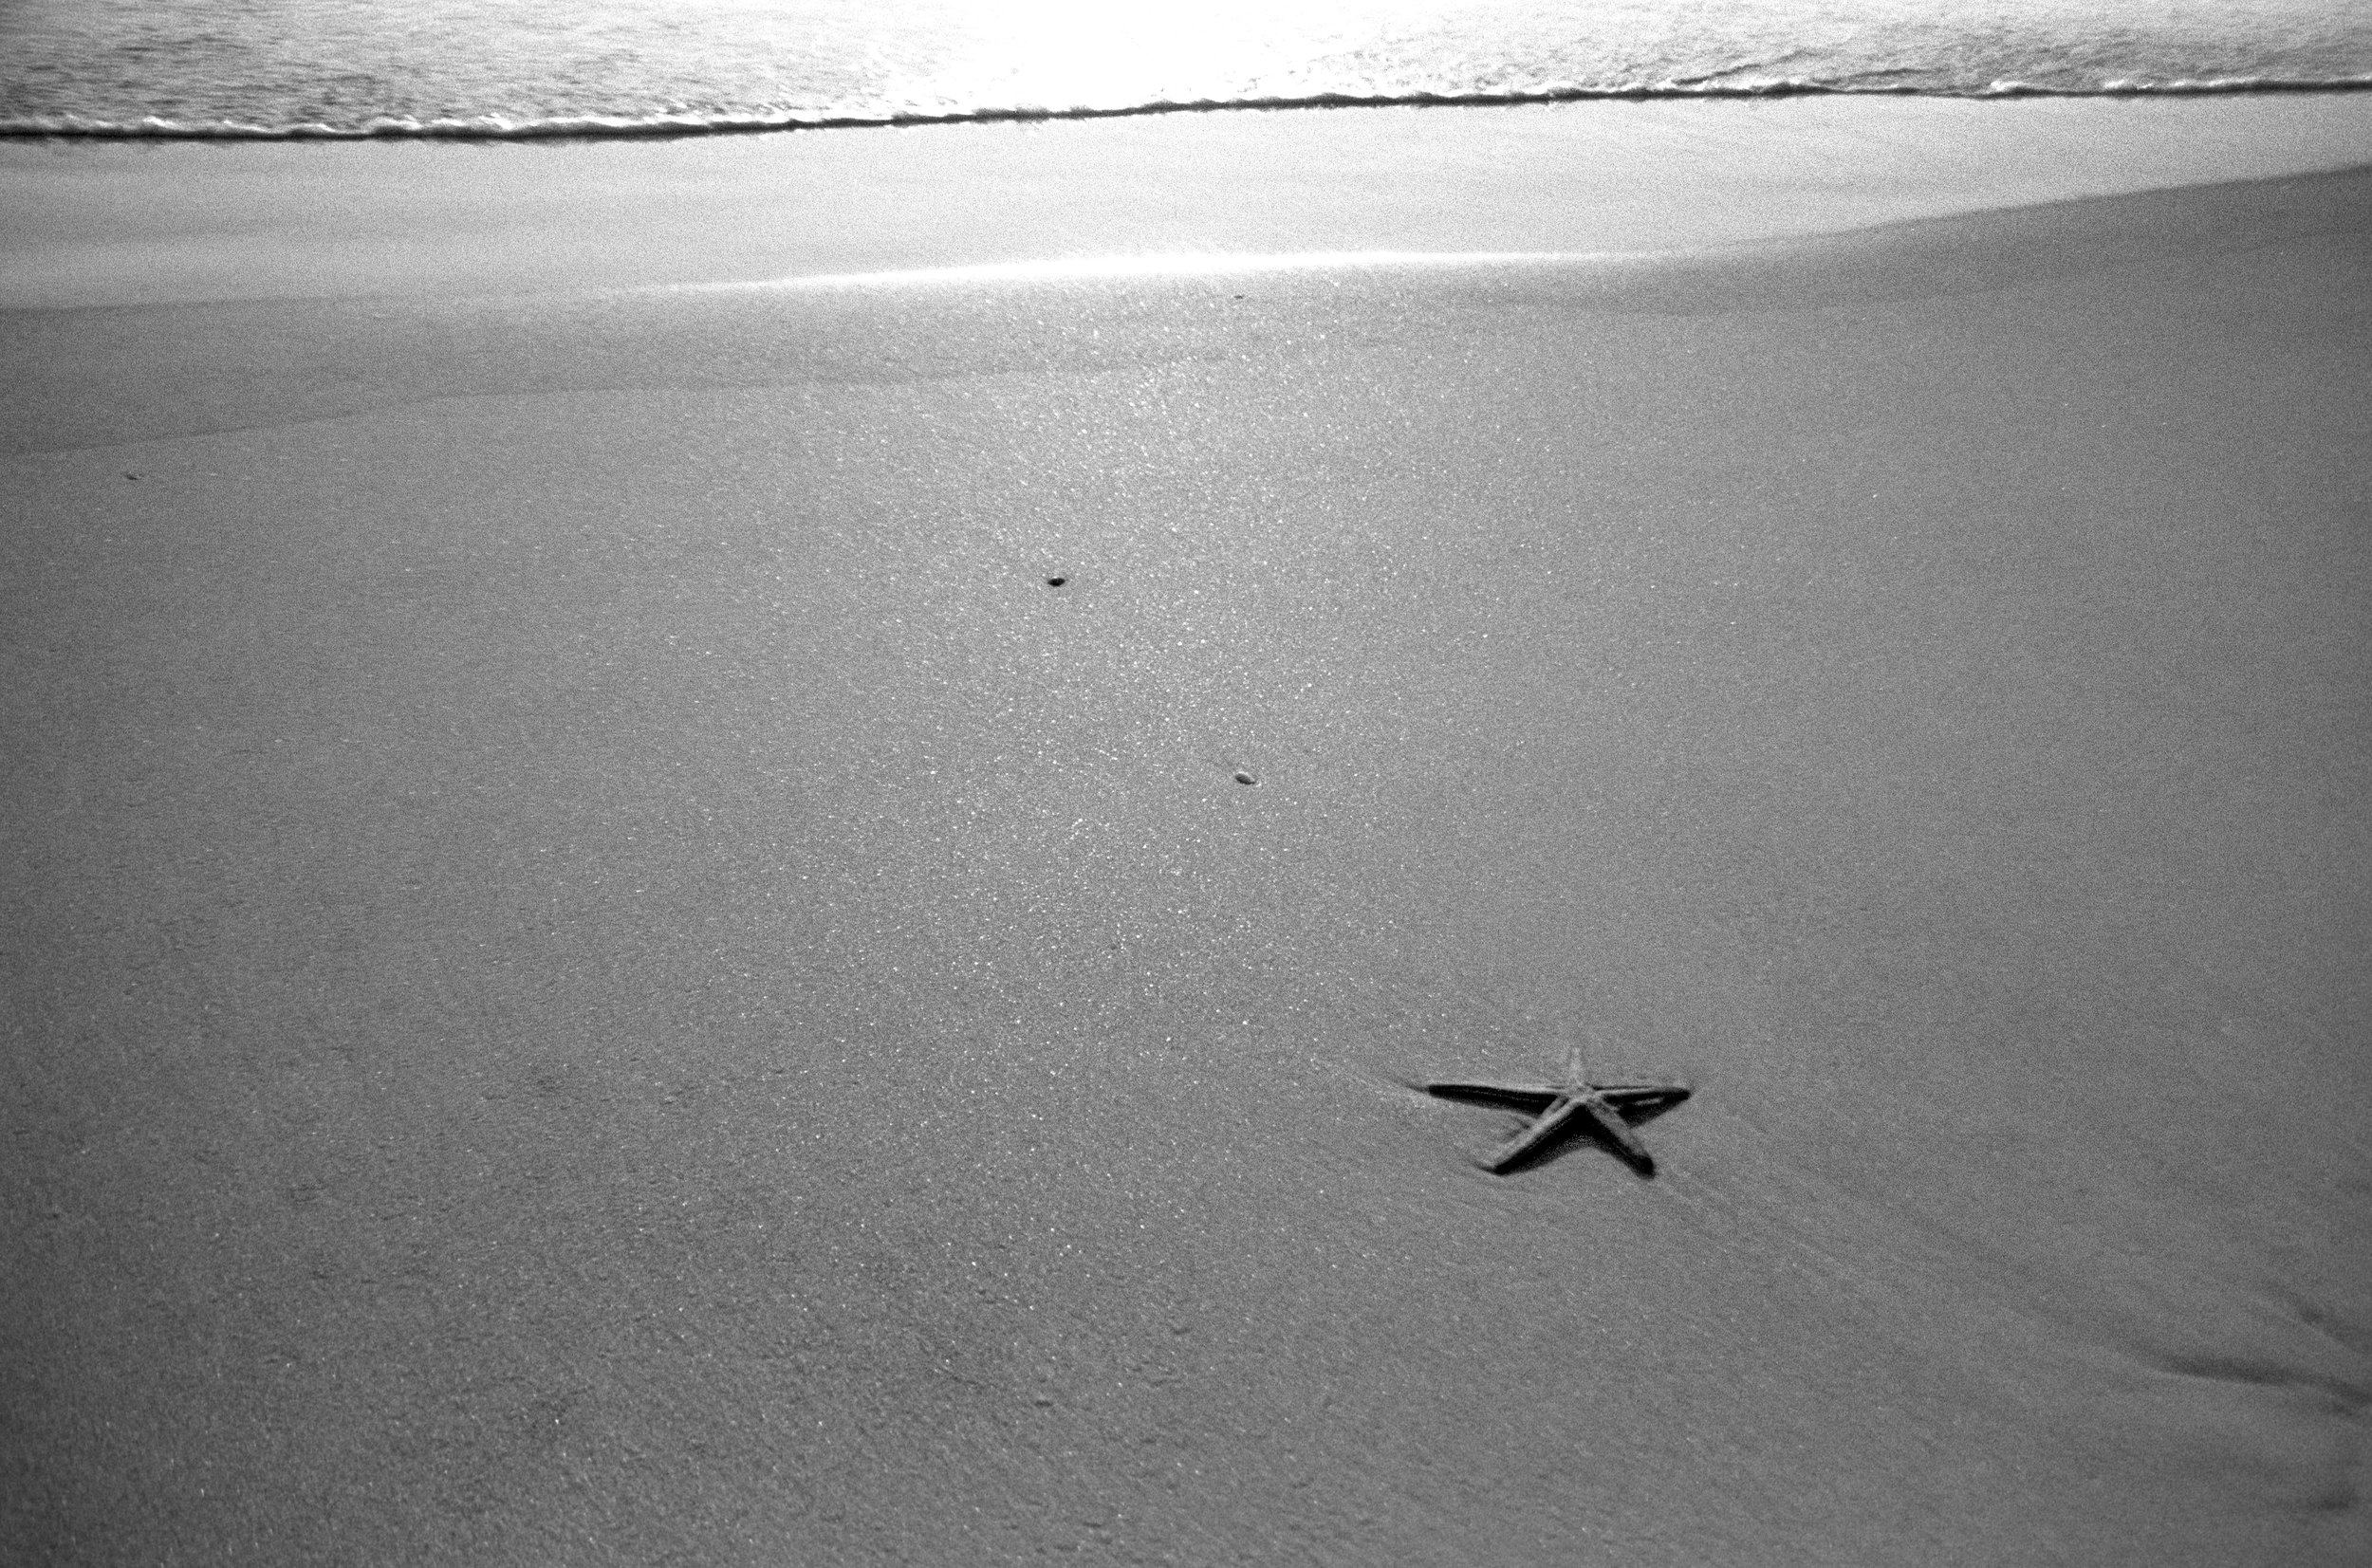 Starfish_Turtle2_BW.jpg